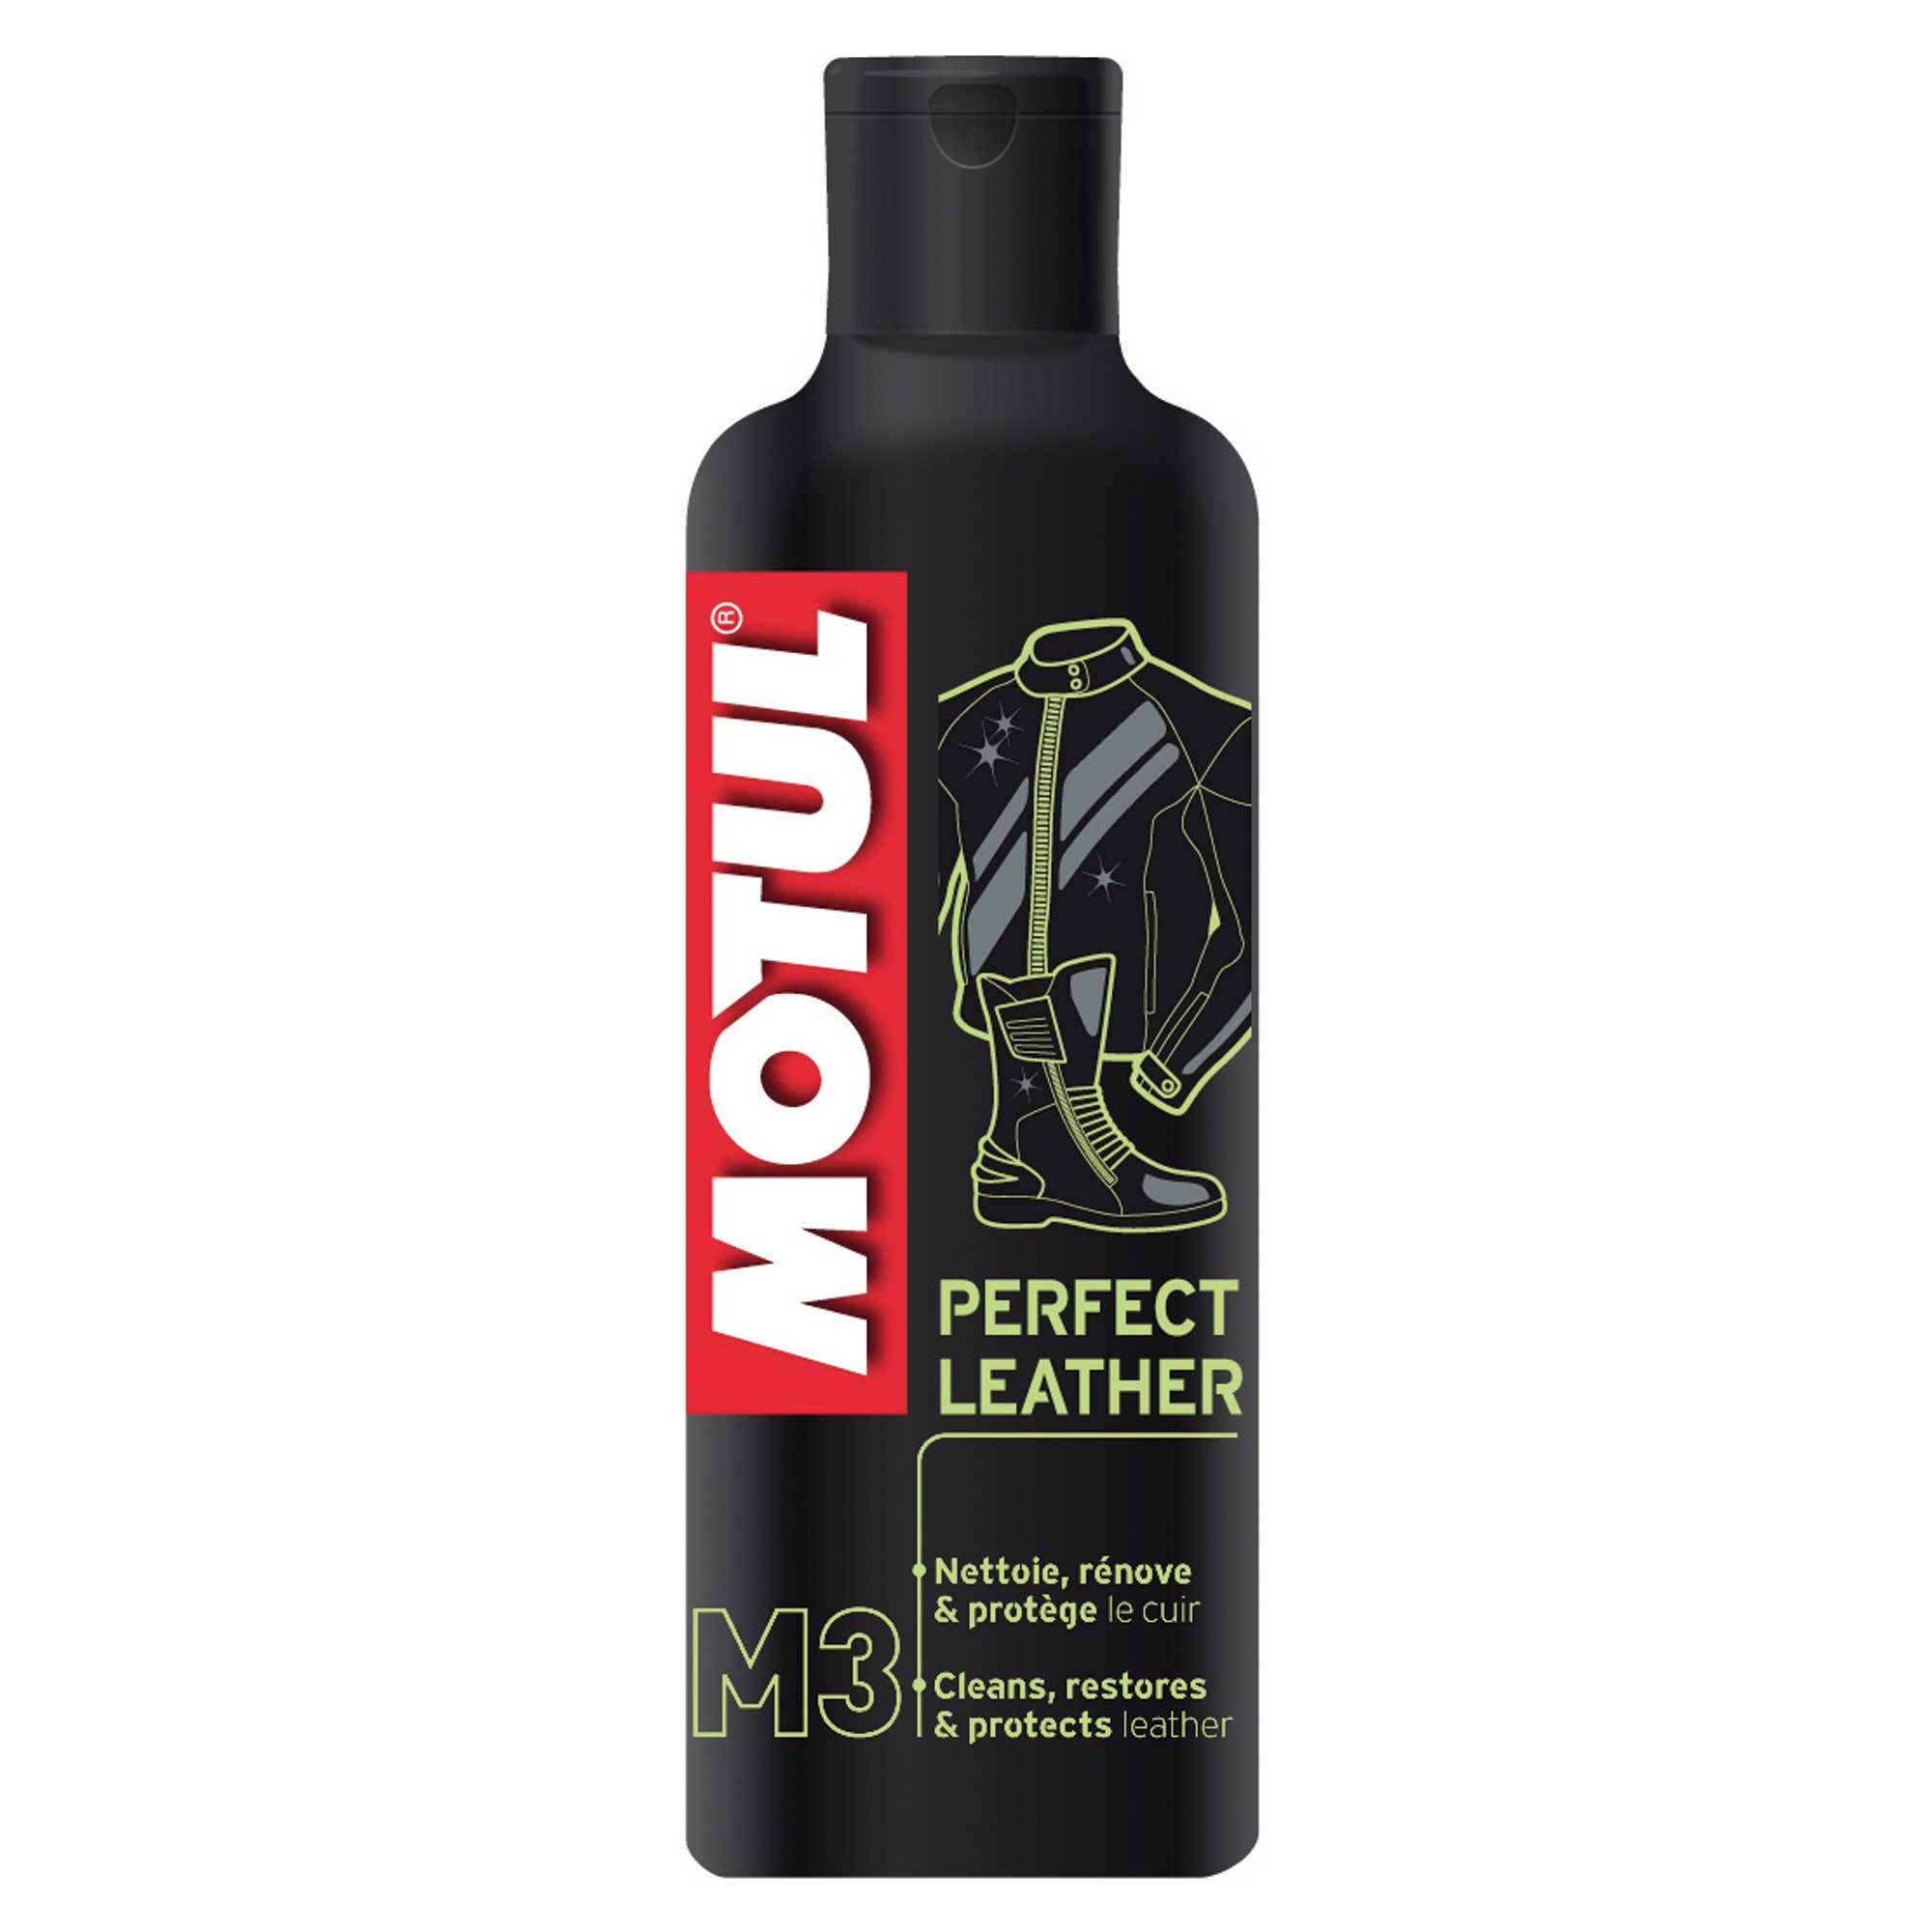 mot_perfect-leather-m3